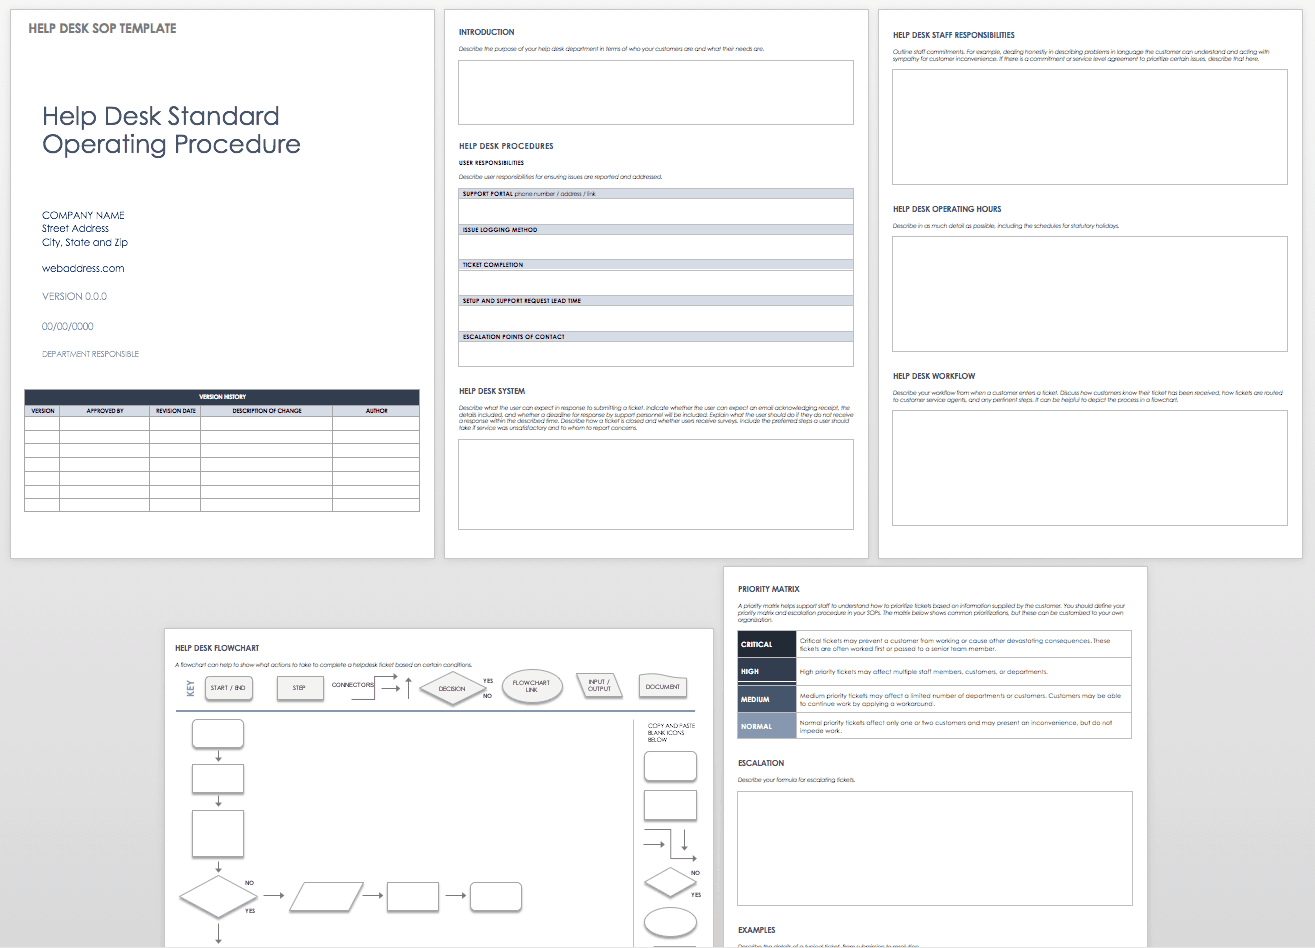 Standard operating procedures templates smartsheet for Help desk procedures template